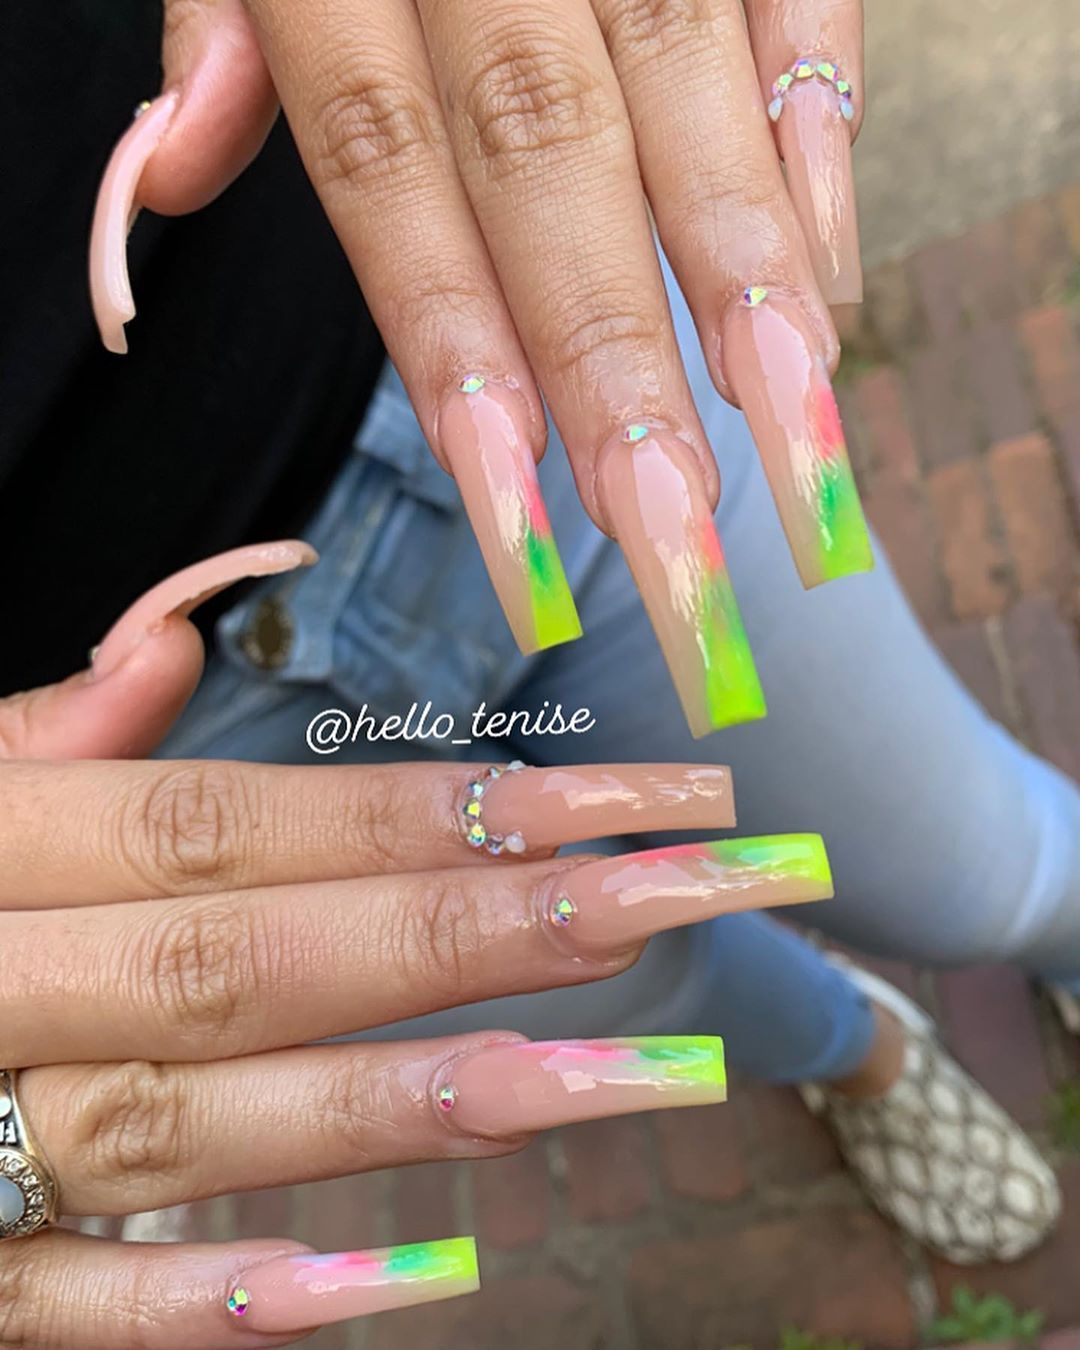 Teniseee A On Instagram Accepting New Clients After July 1st Classes Are Always Available In 2020 Artificial Nails Square Acrylic Nails Acrilic Nails